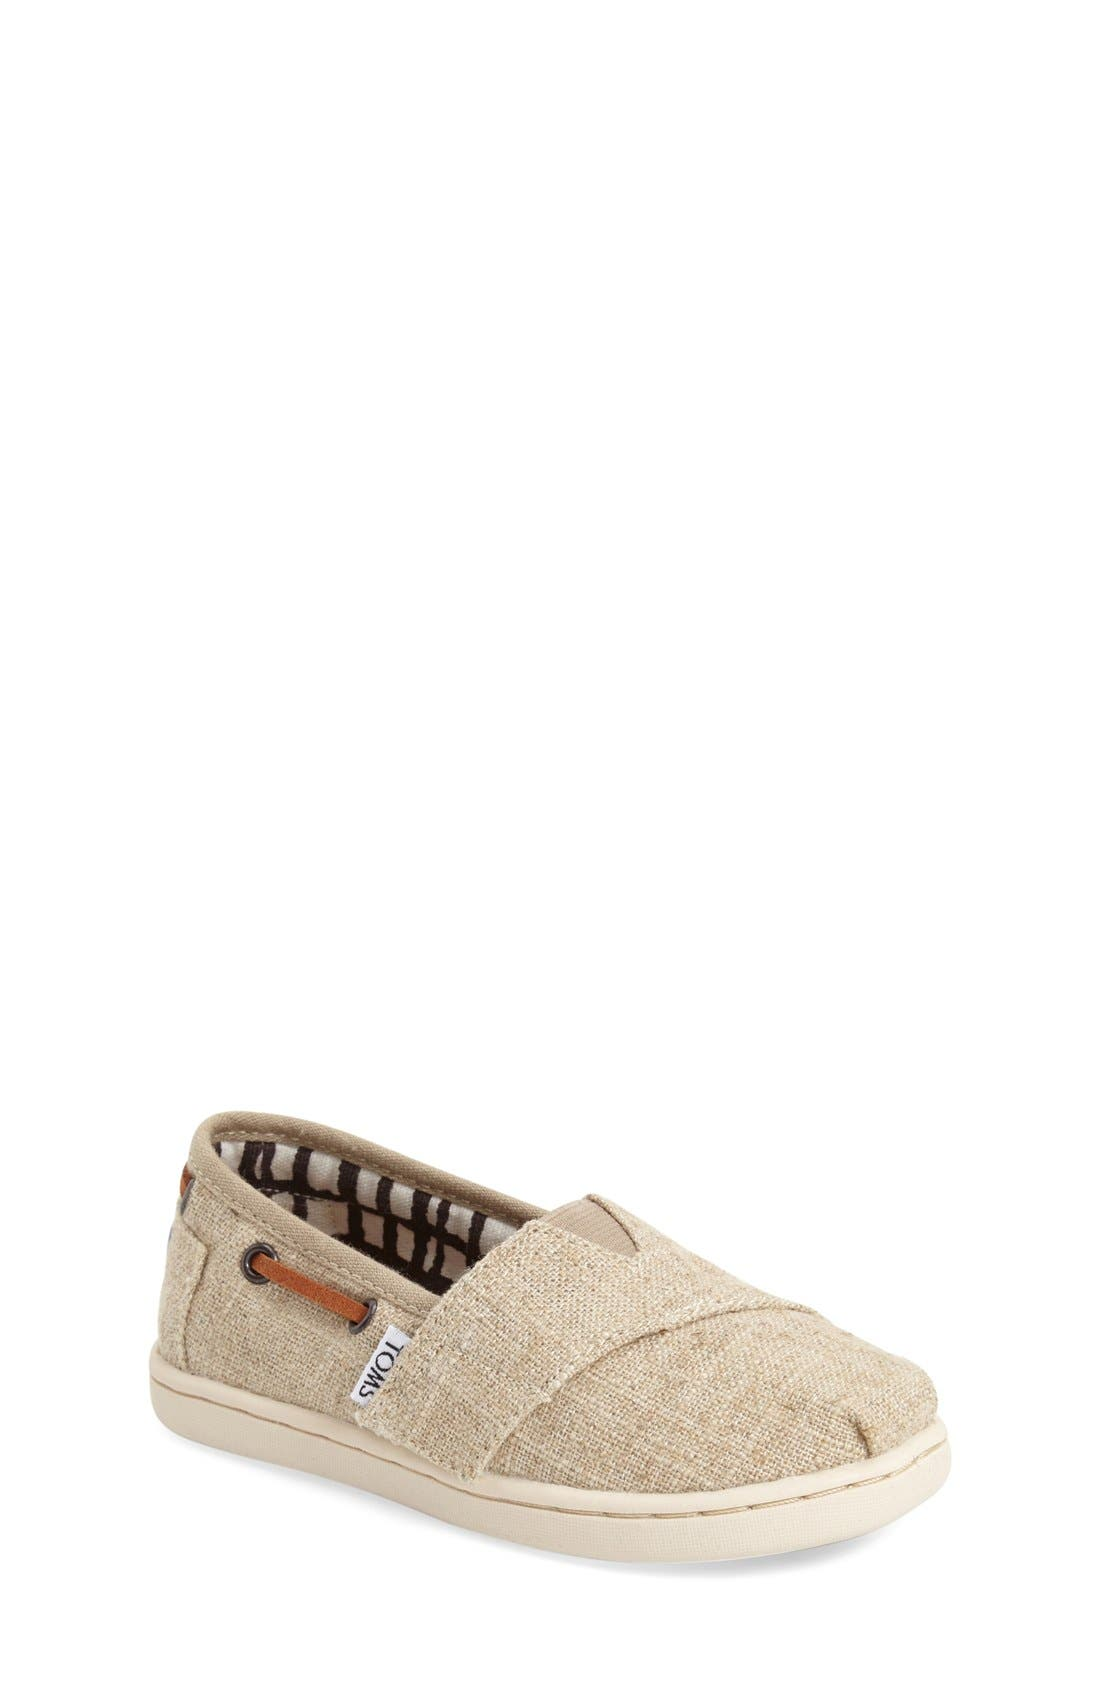 TOMS Bimini Burlap Slip-On (Baby, Walker & Toddler)